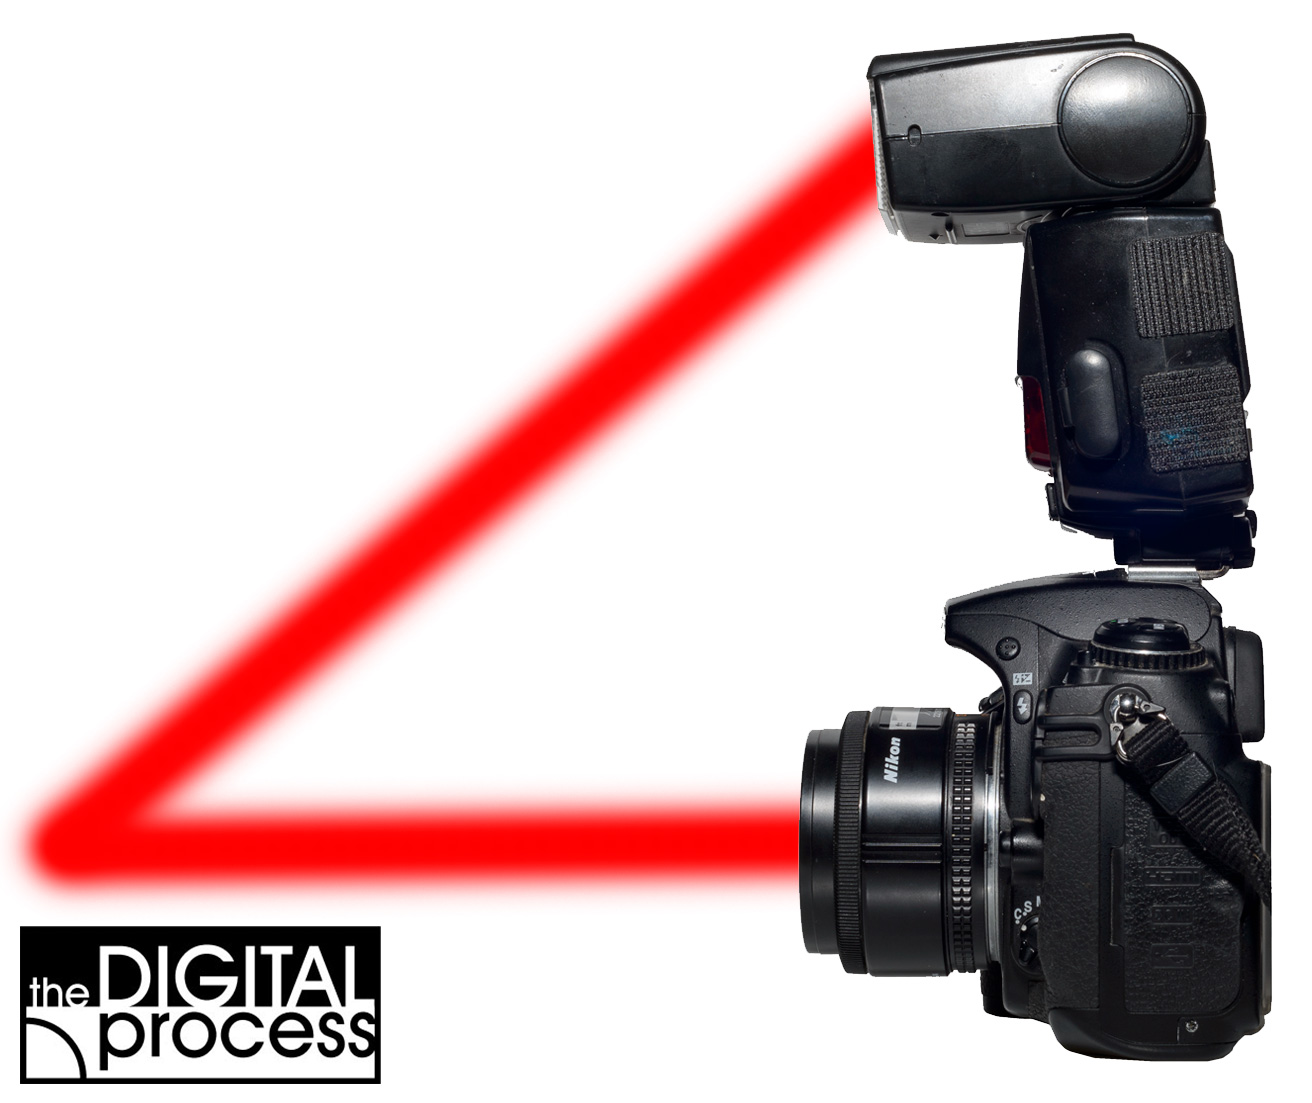 slr camera diagram rf modulator hookup the basics of flash photography a guide for beginners